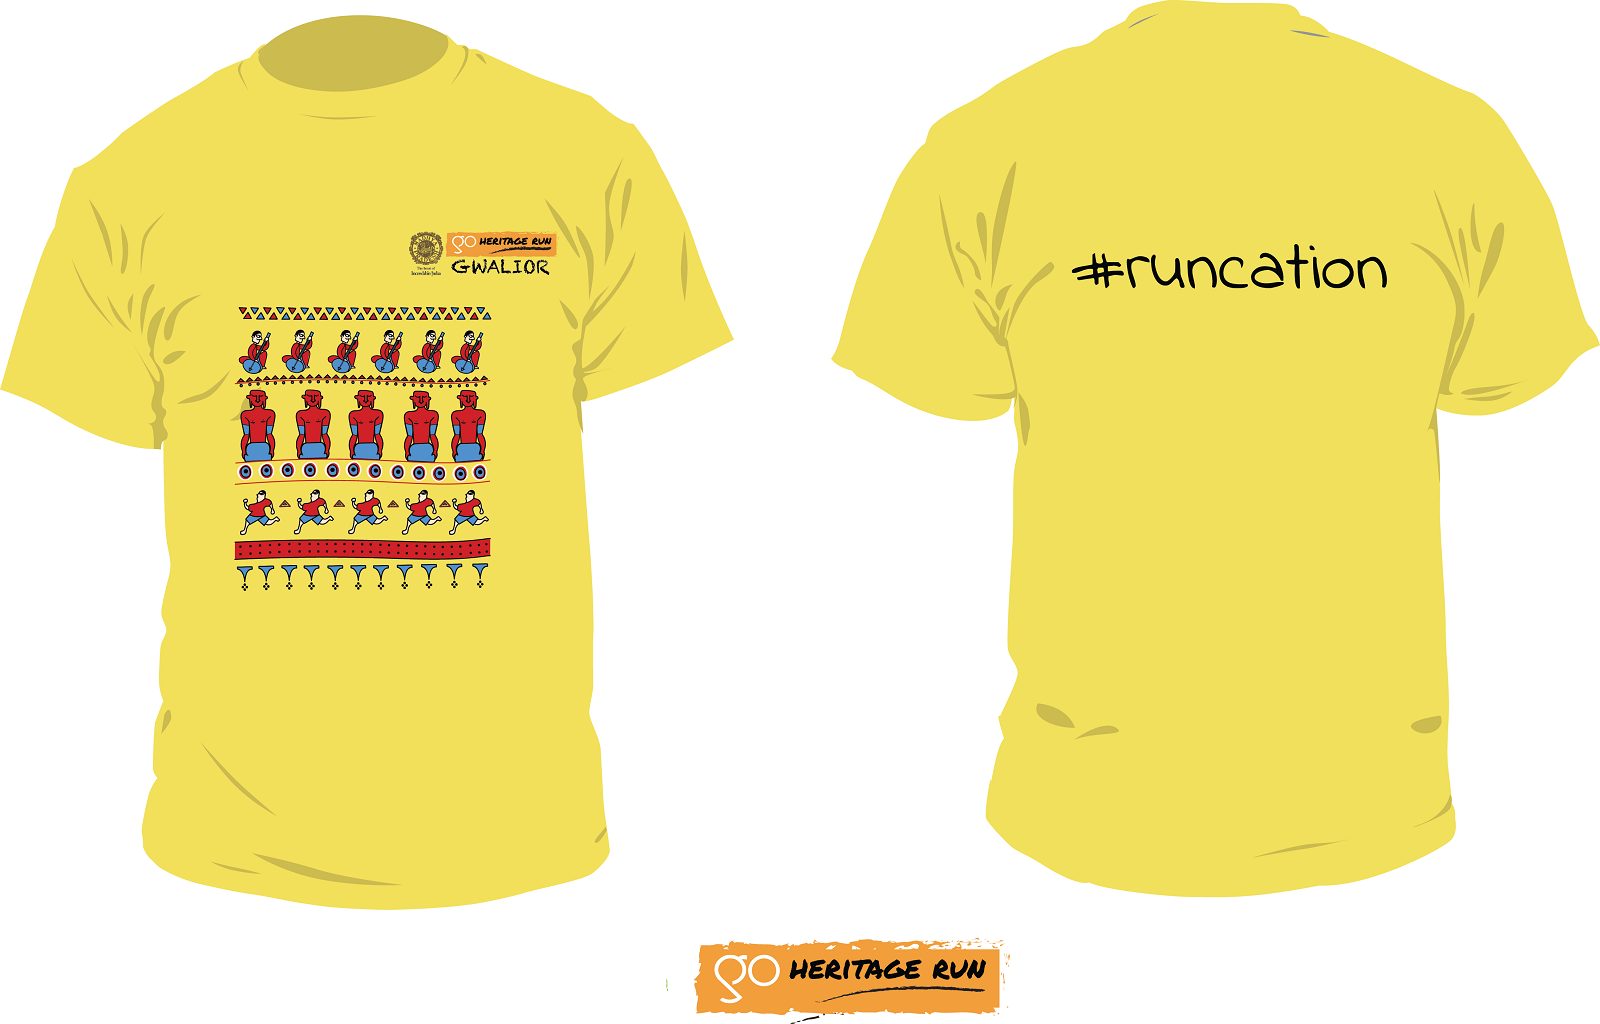 Gwalior 2019 Run T-shirt